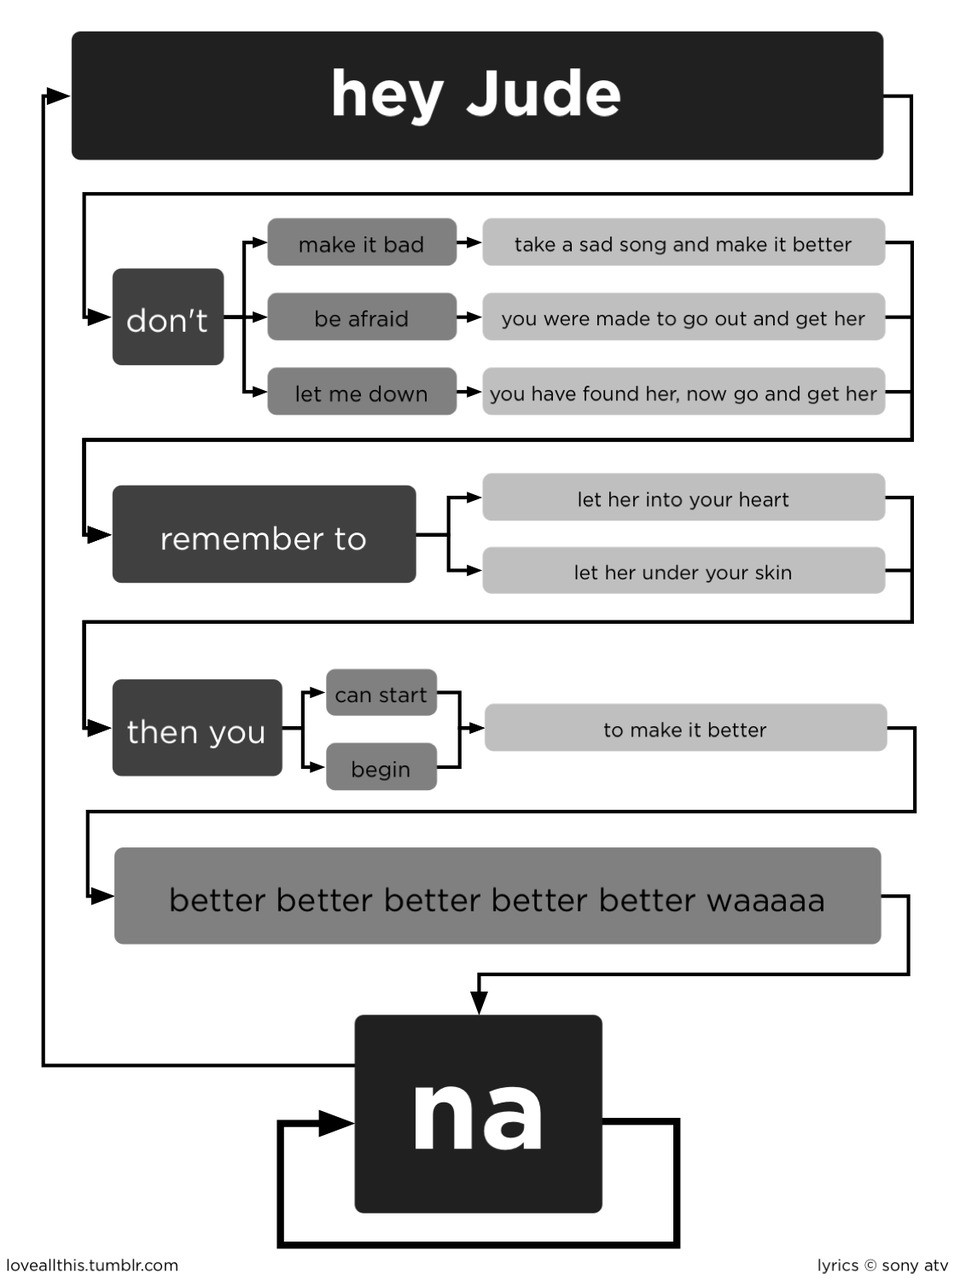 Gone viral on being internet famous for a day this happened to have you seen the hey jude flowchart nvjuhfo Image collections